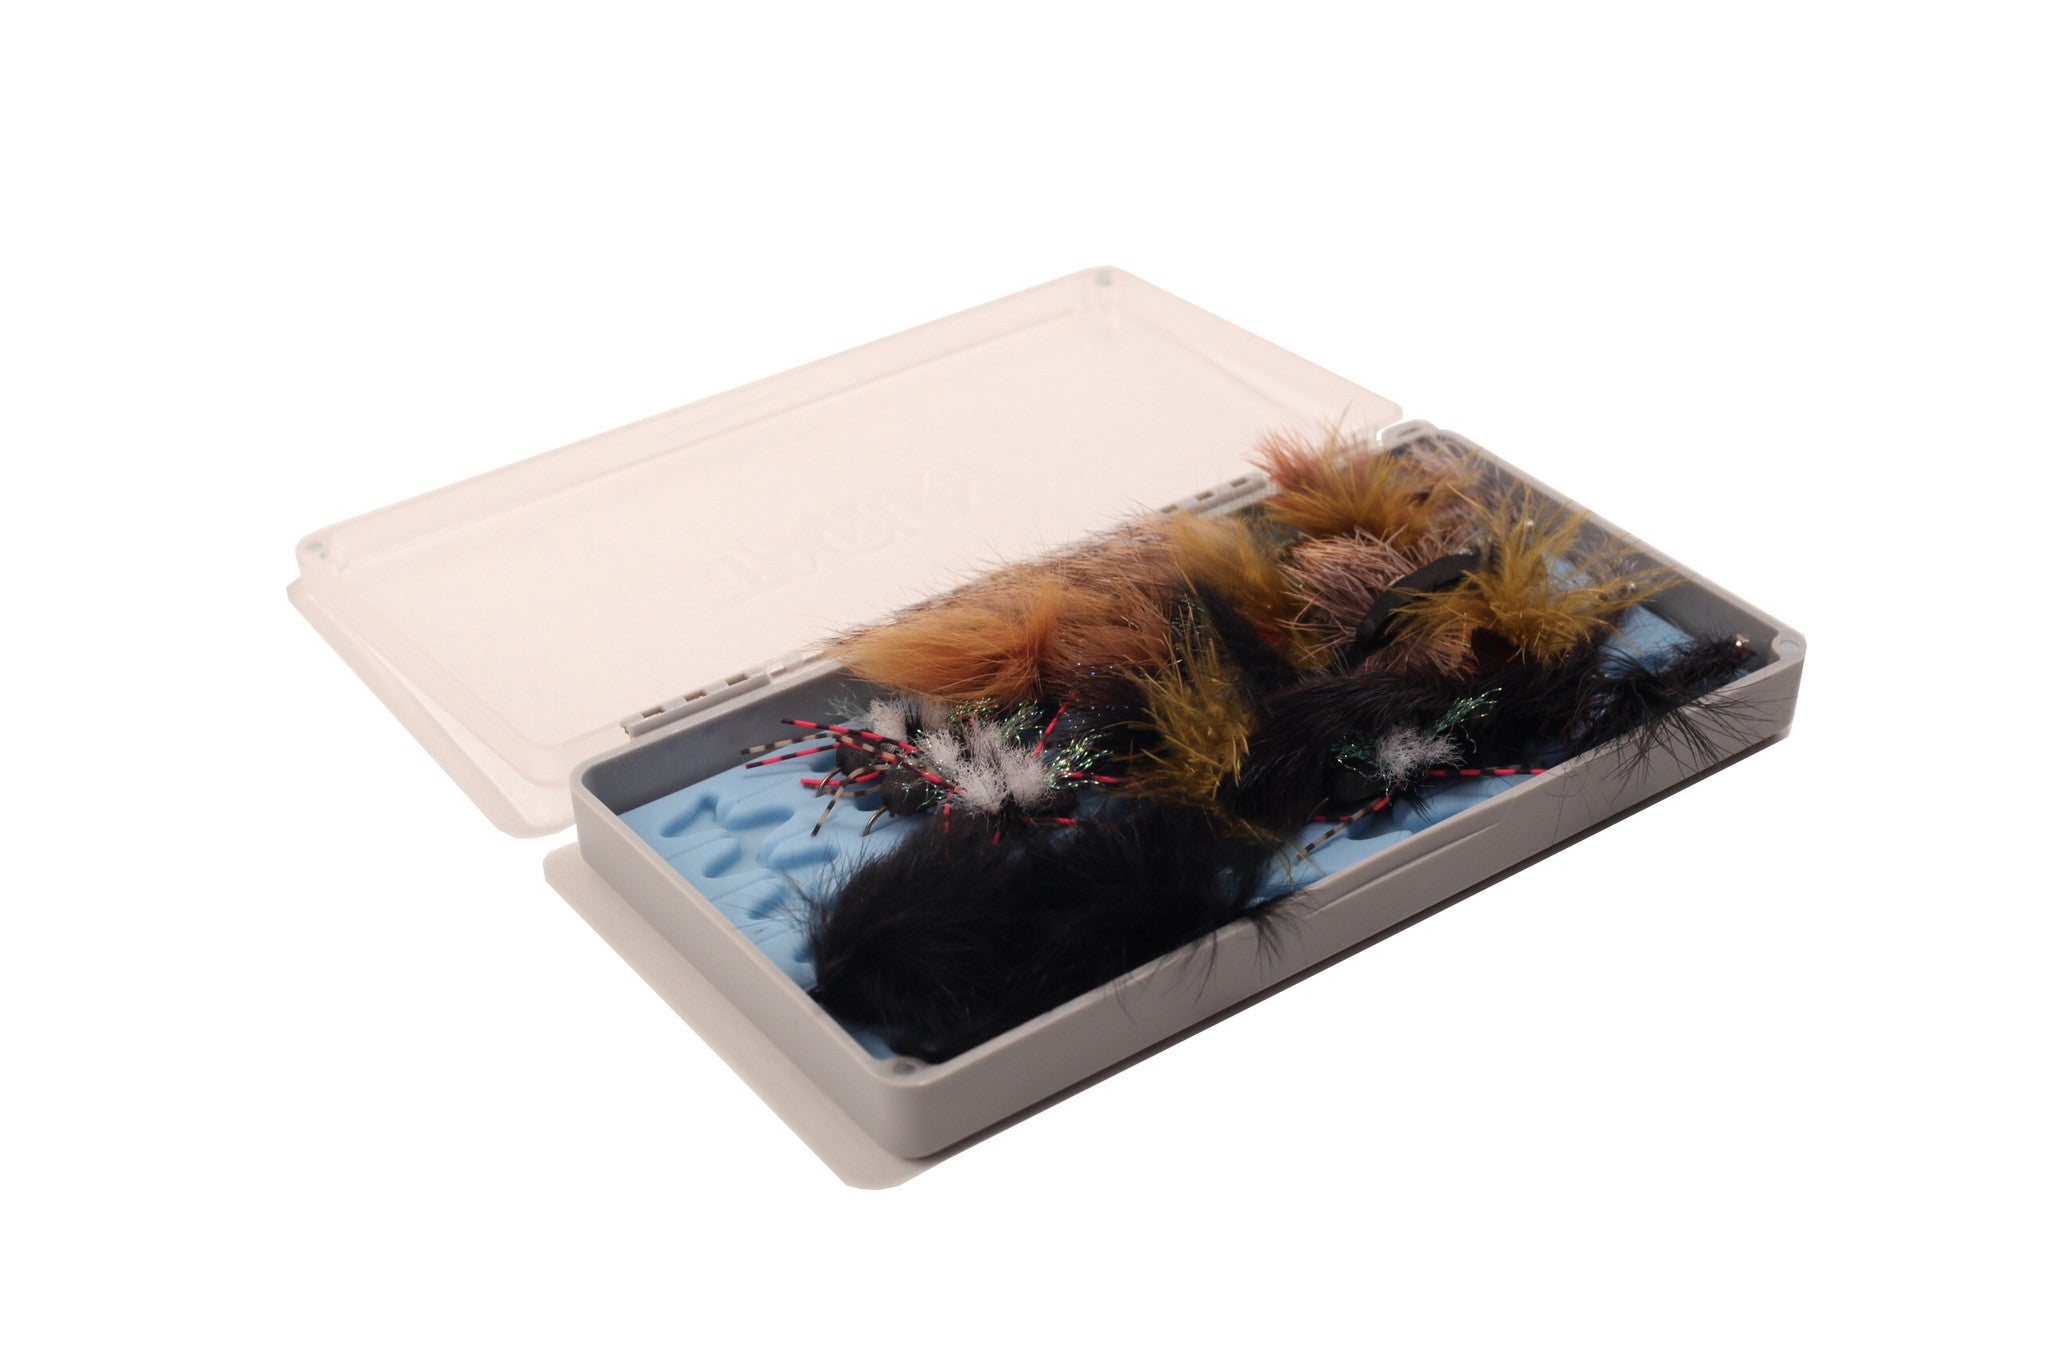 Silicone Storage New Model FULLING MILL TACKY FLY BOX The Big Bug Box